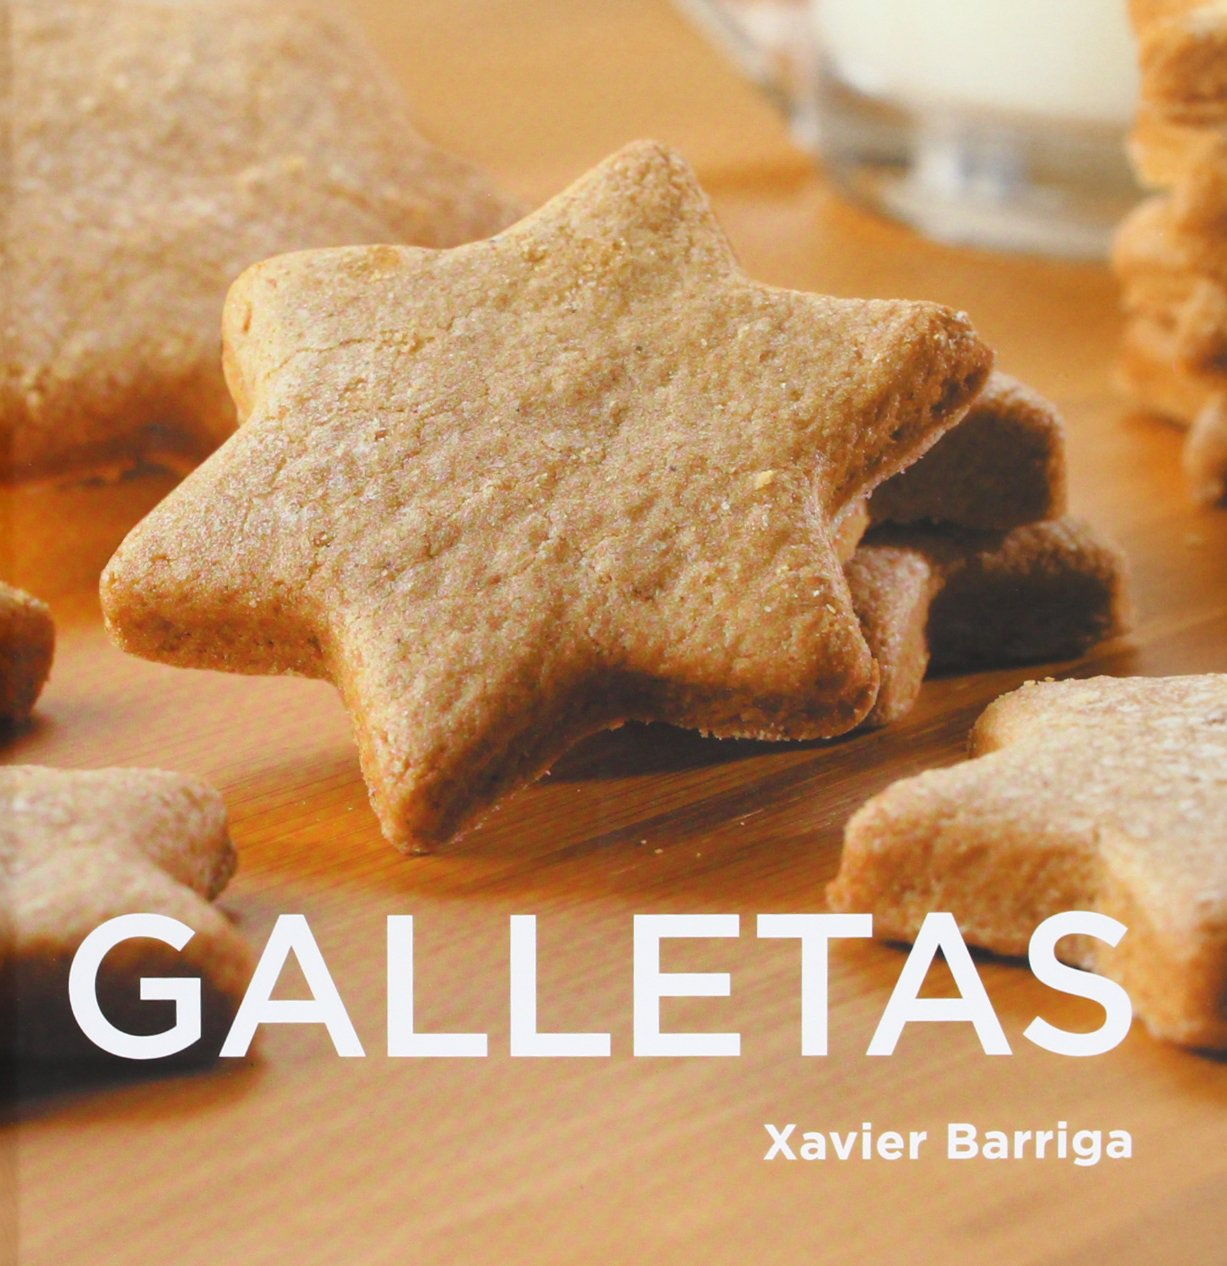 Galletas de avena sencillas